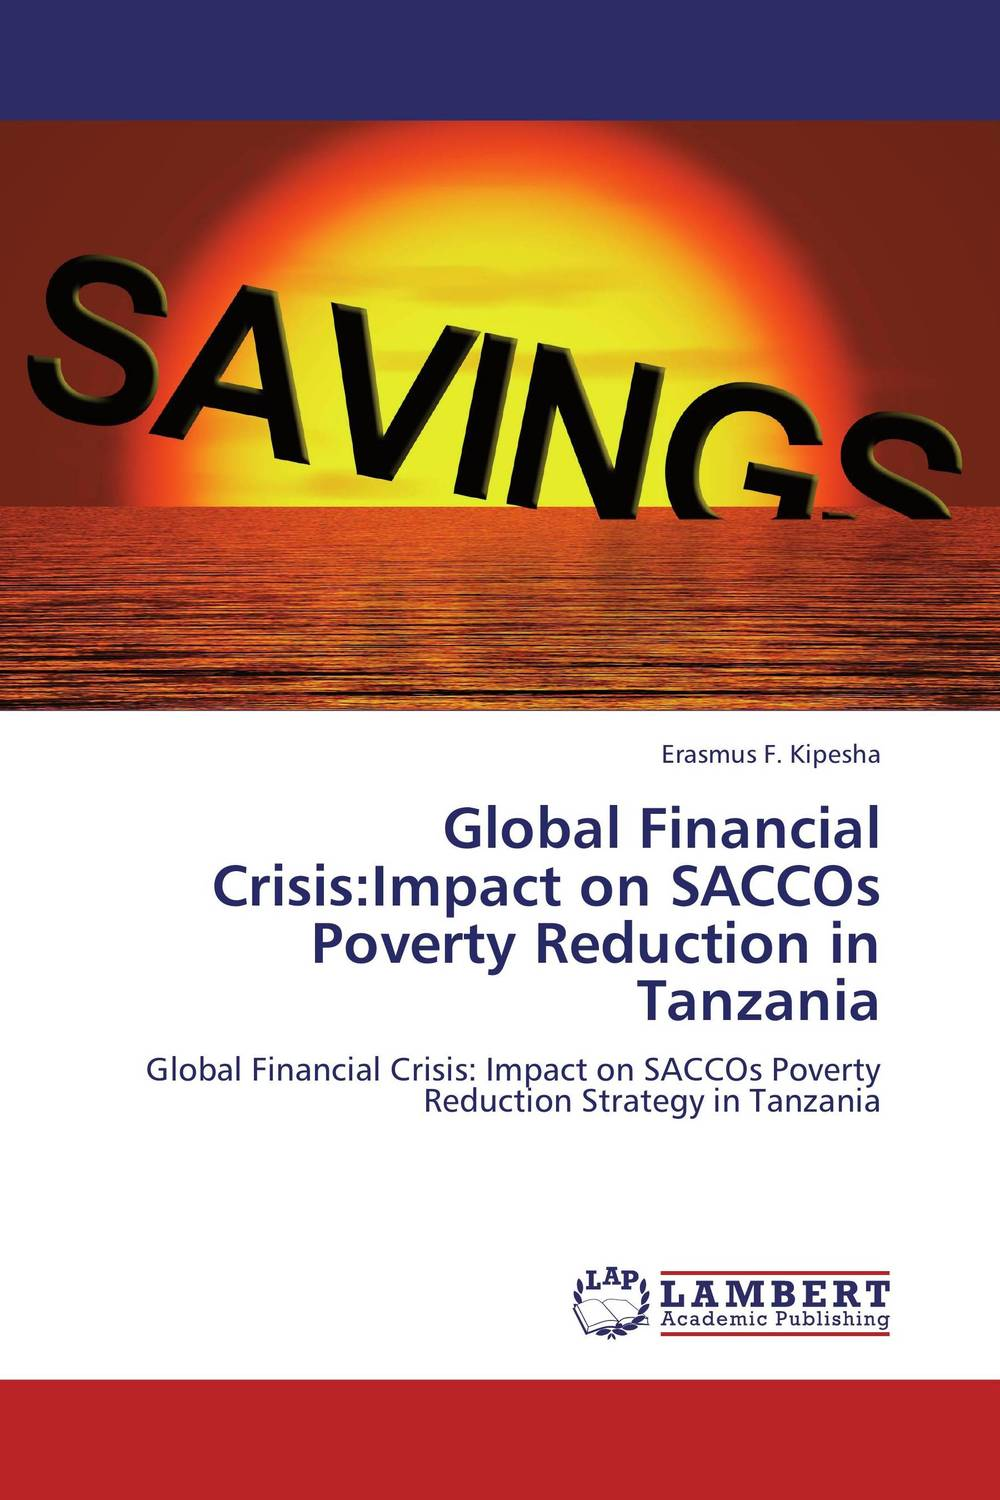 Global Financial Crisis:Impact on SACCOs Poverty Reduction in Tanzania